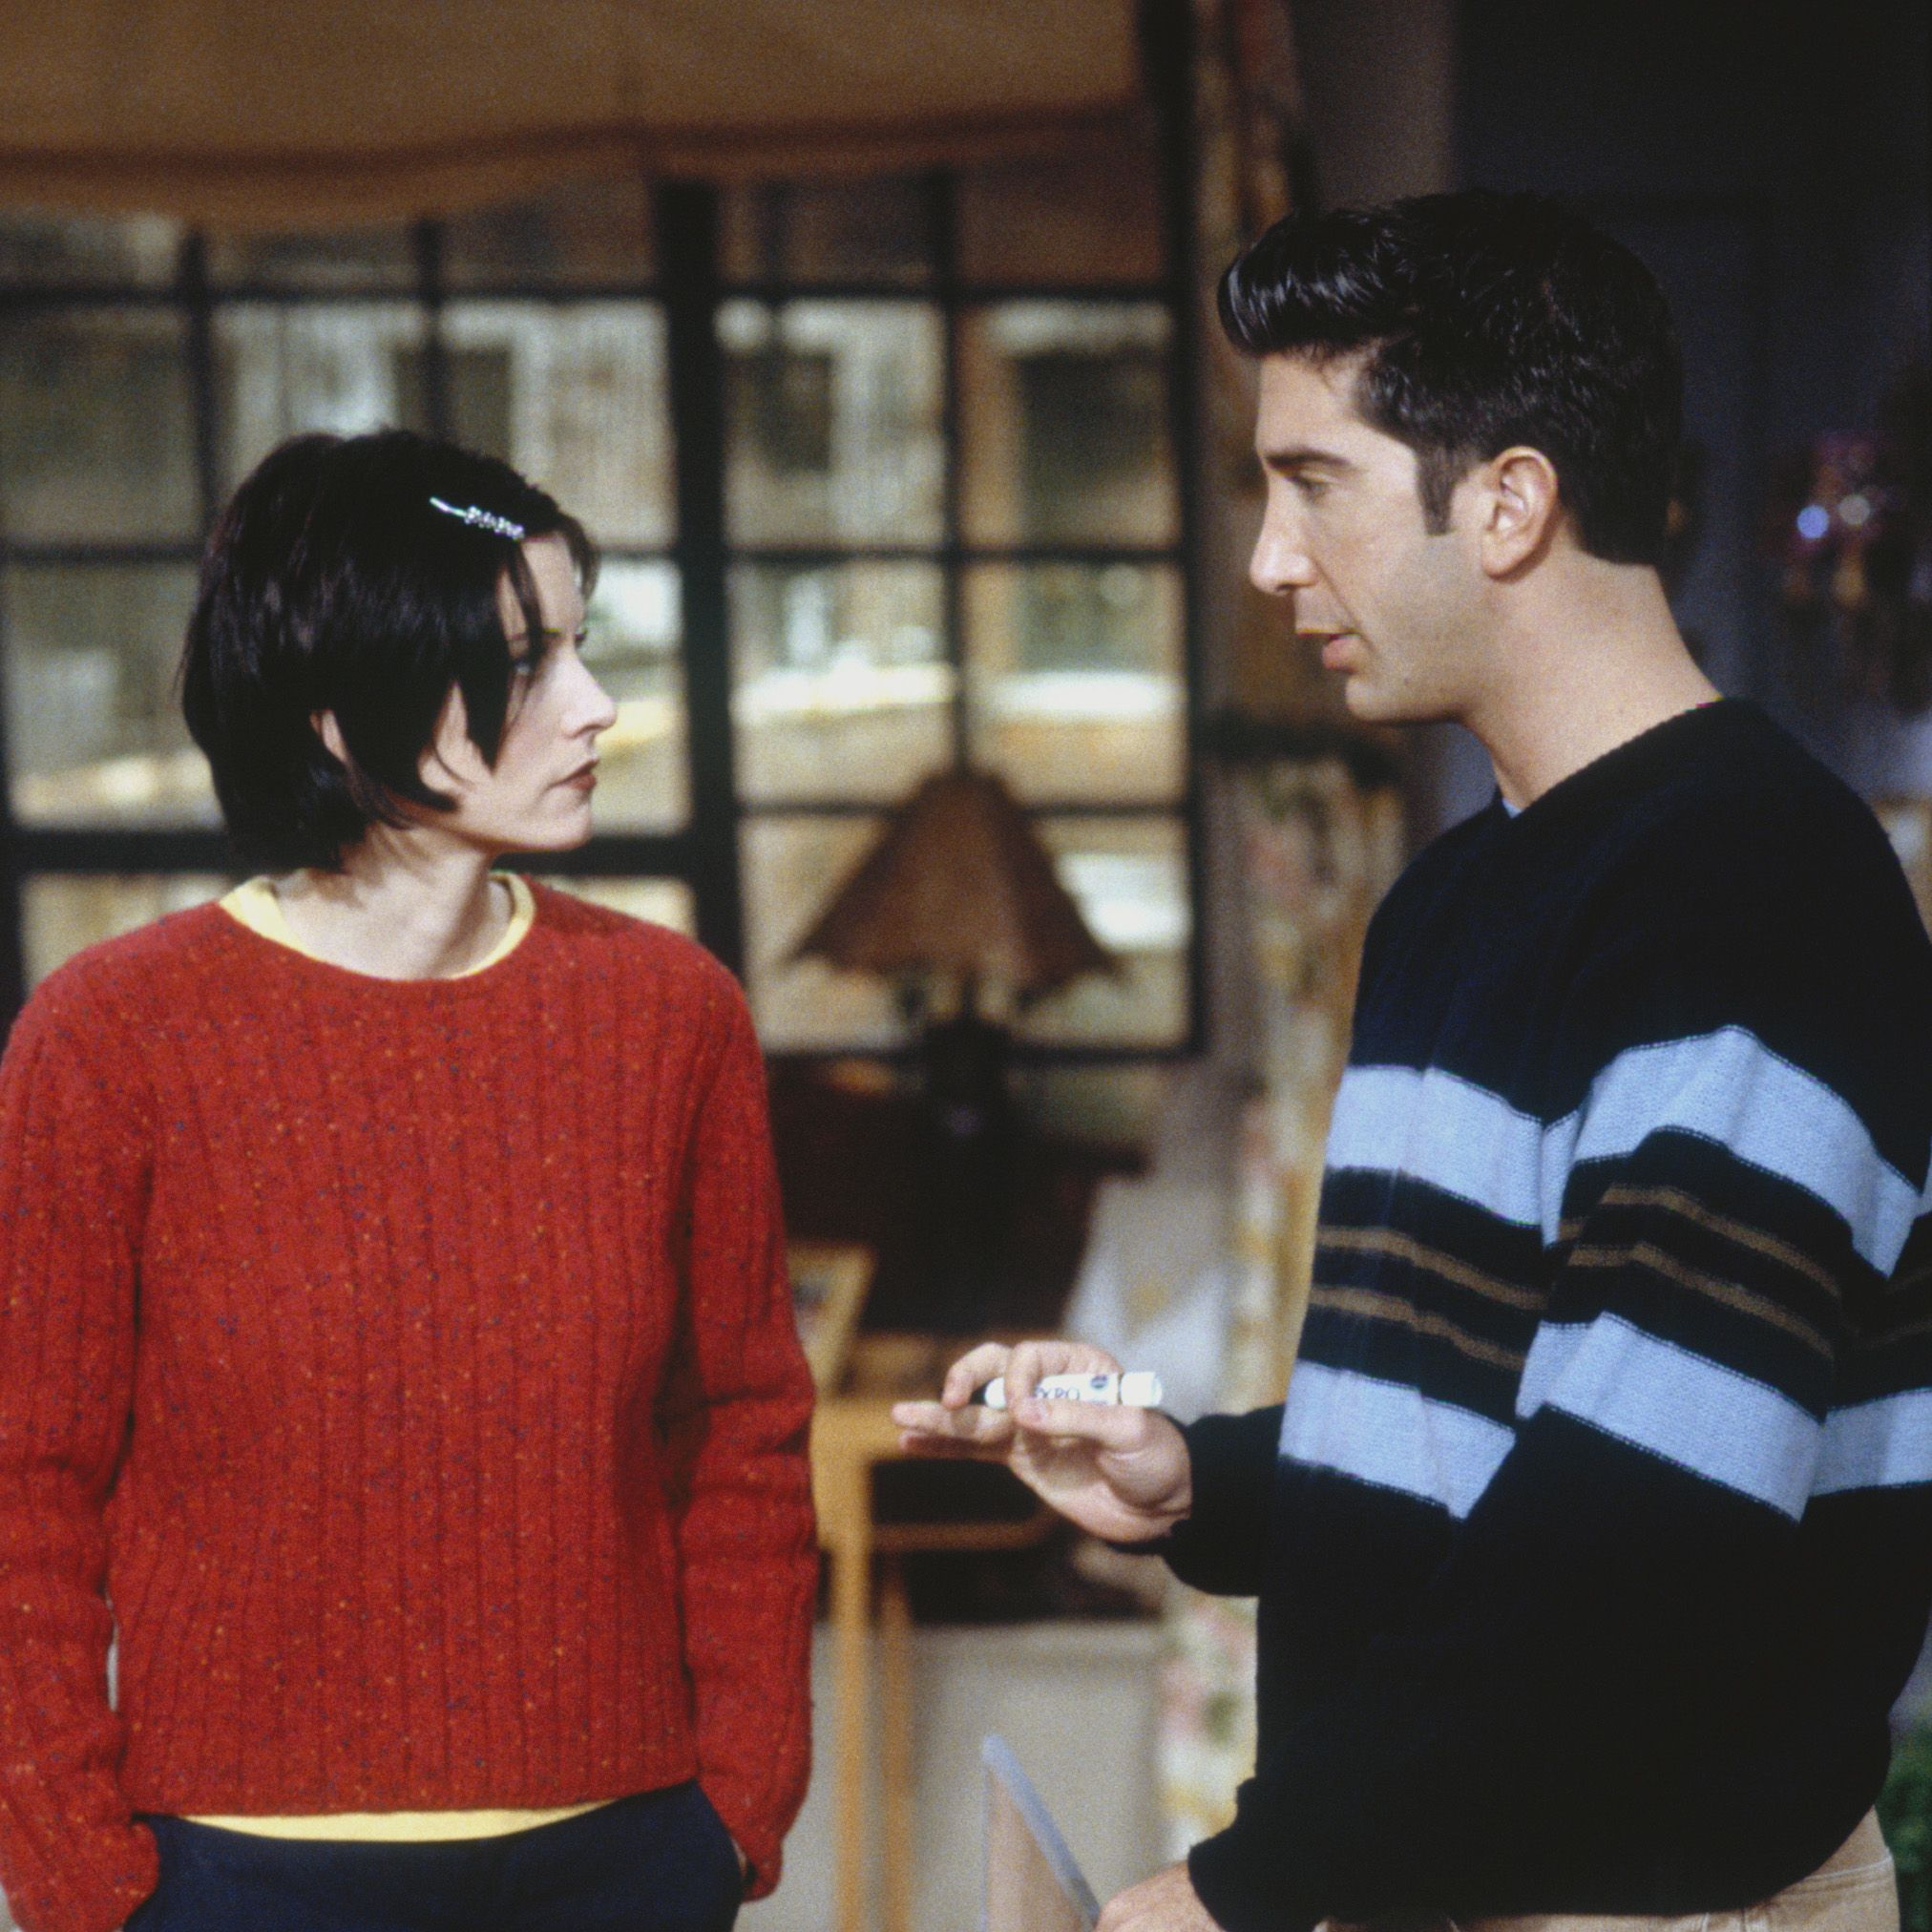 FRIENDS -- &quot&#x3B;The One with the Embryos&quot&#x3B; Episode 12 -- Pictured: (l-r) Courteney Cox as Monica Geller, David Schwimmer as Ross Geller -- Photo by: J. Delvalle/NBCU Photo Bank